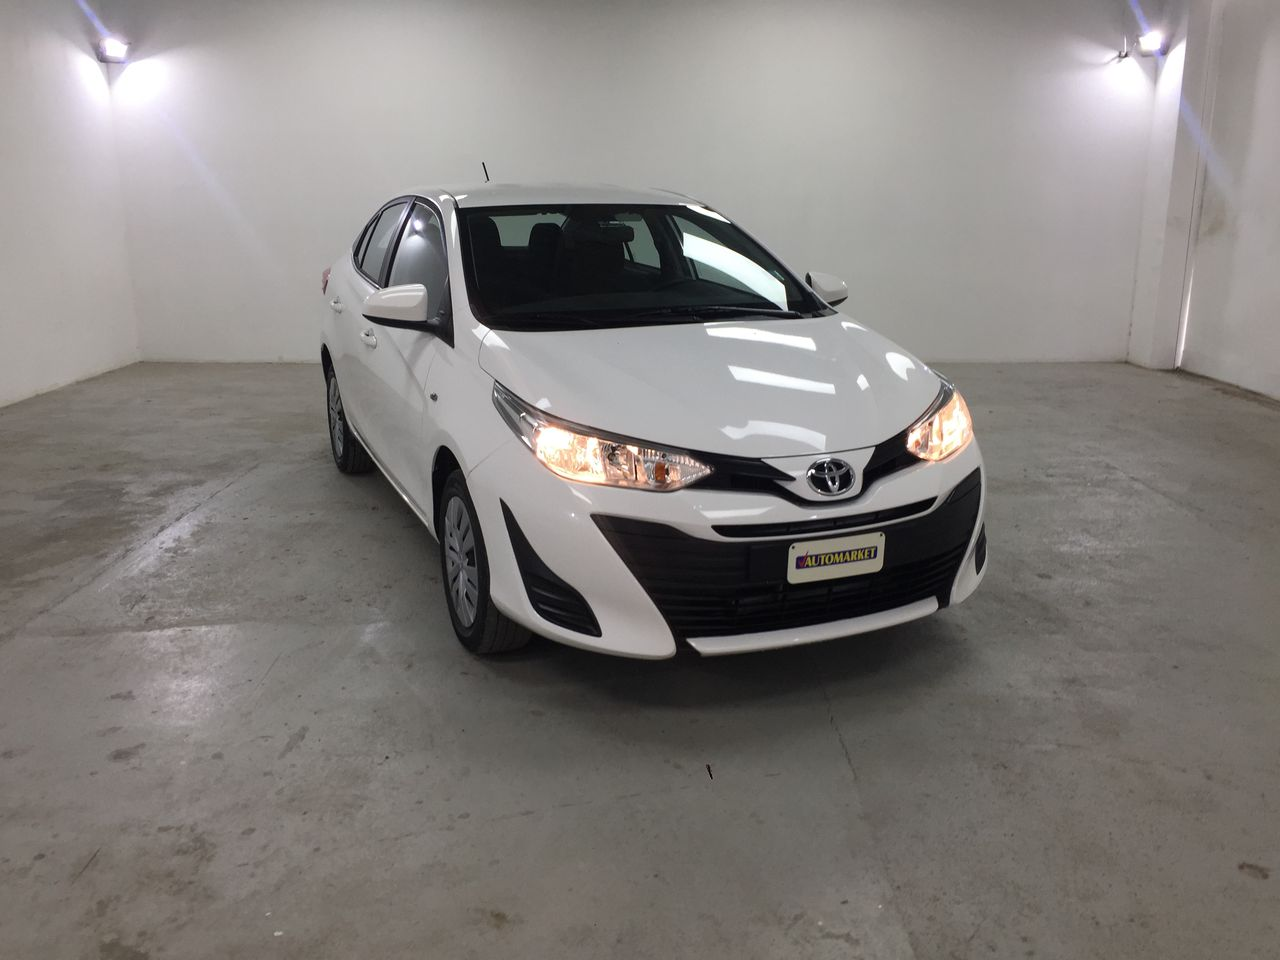 TOYOTA YARIS SUPER WHITE II 2018 CL6485